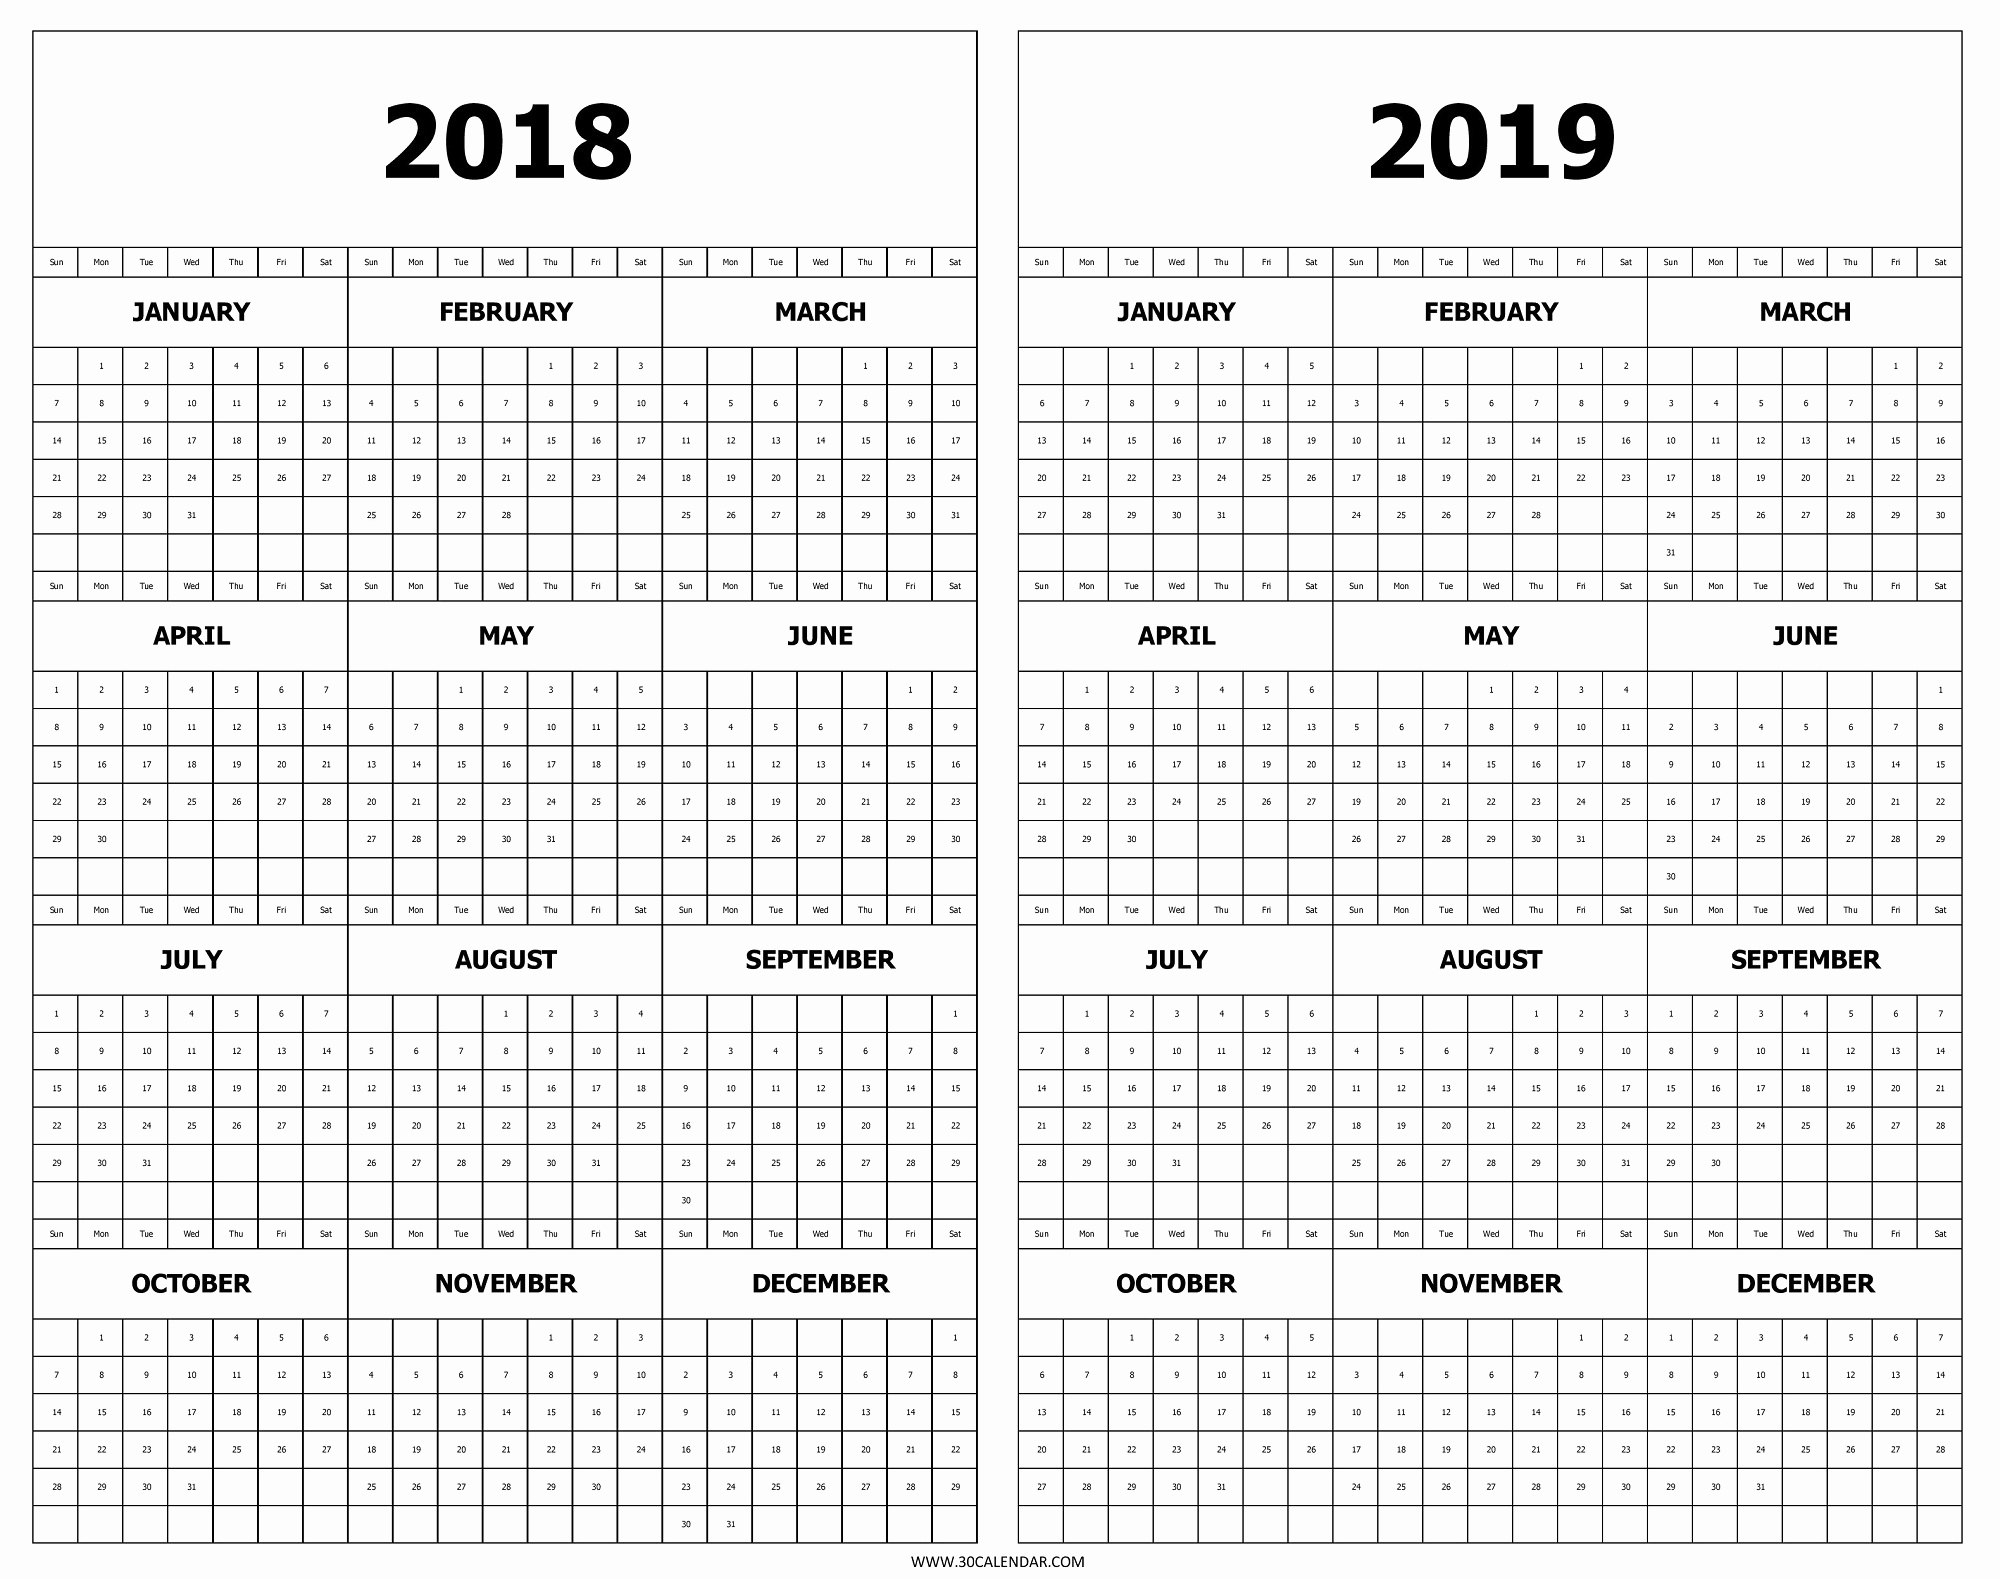 Unique 53 Sample Yearly Calendar At A Glance 2019 Printable regarding Printable Year At A Glance Calendar 2019-2020